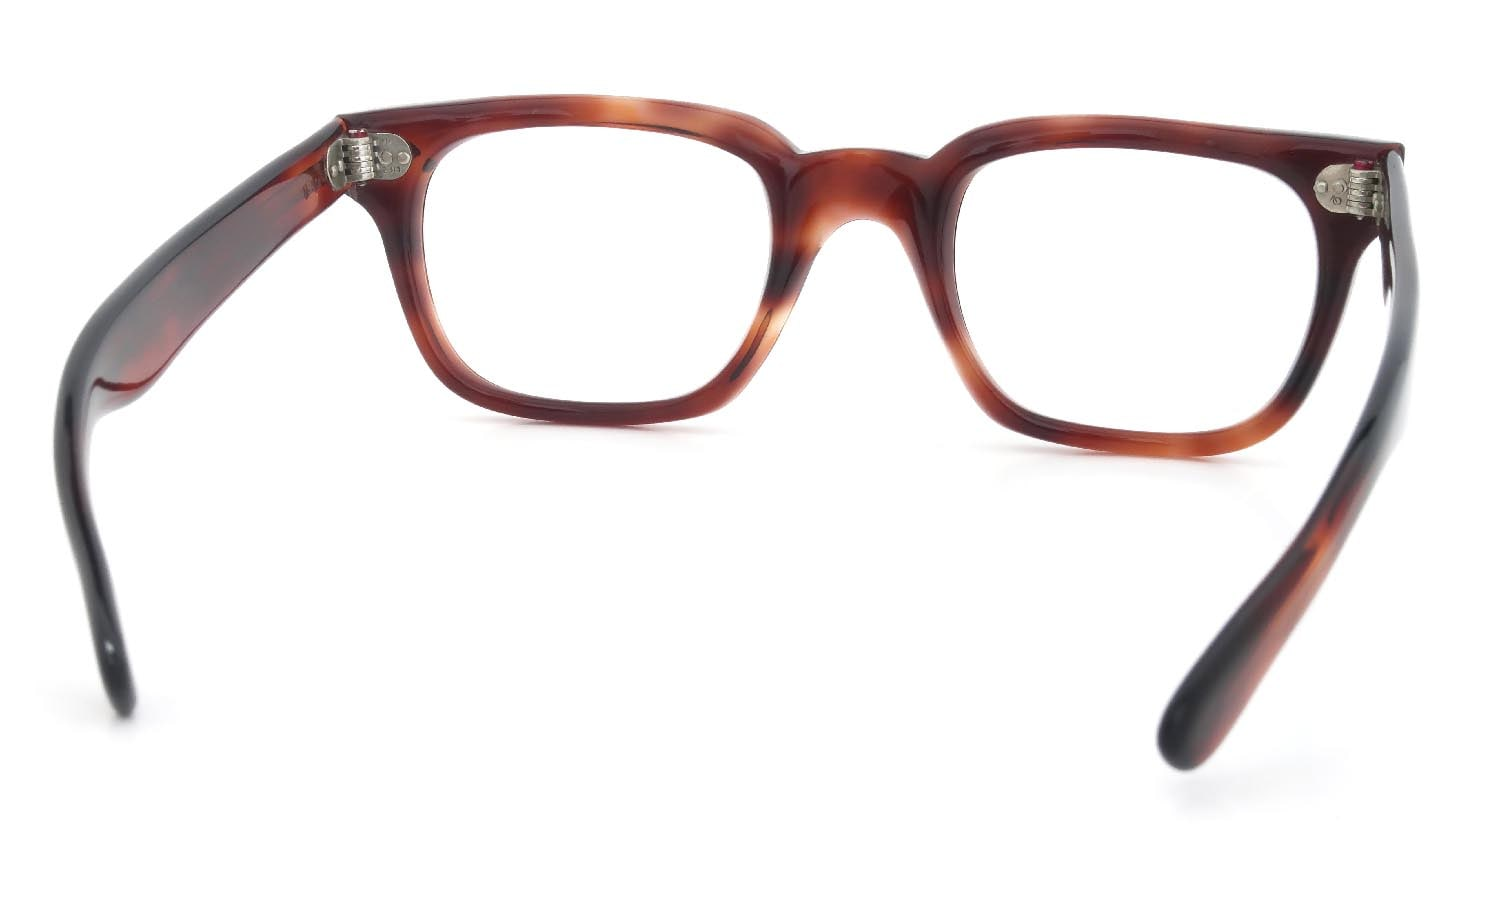 American Optical 1960s MANHATTAN DEMI 46-23